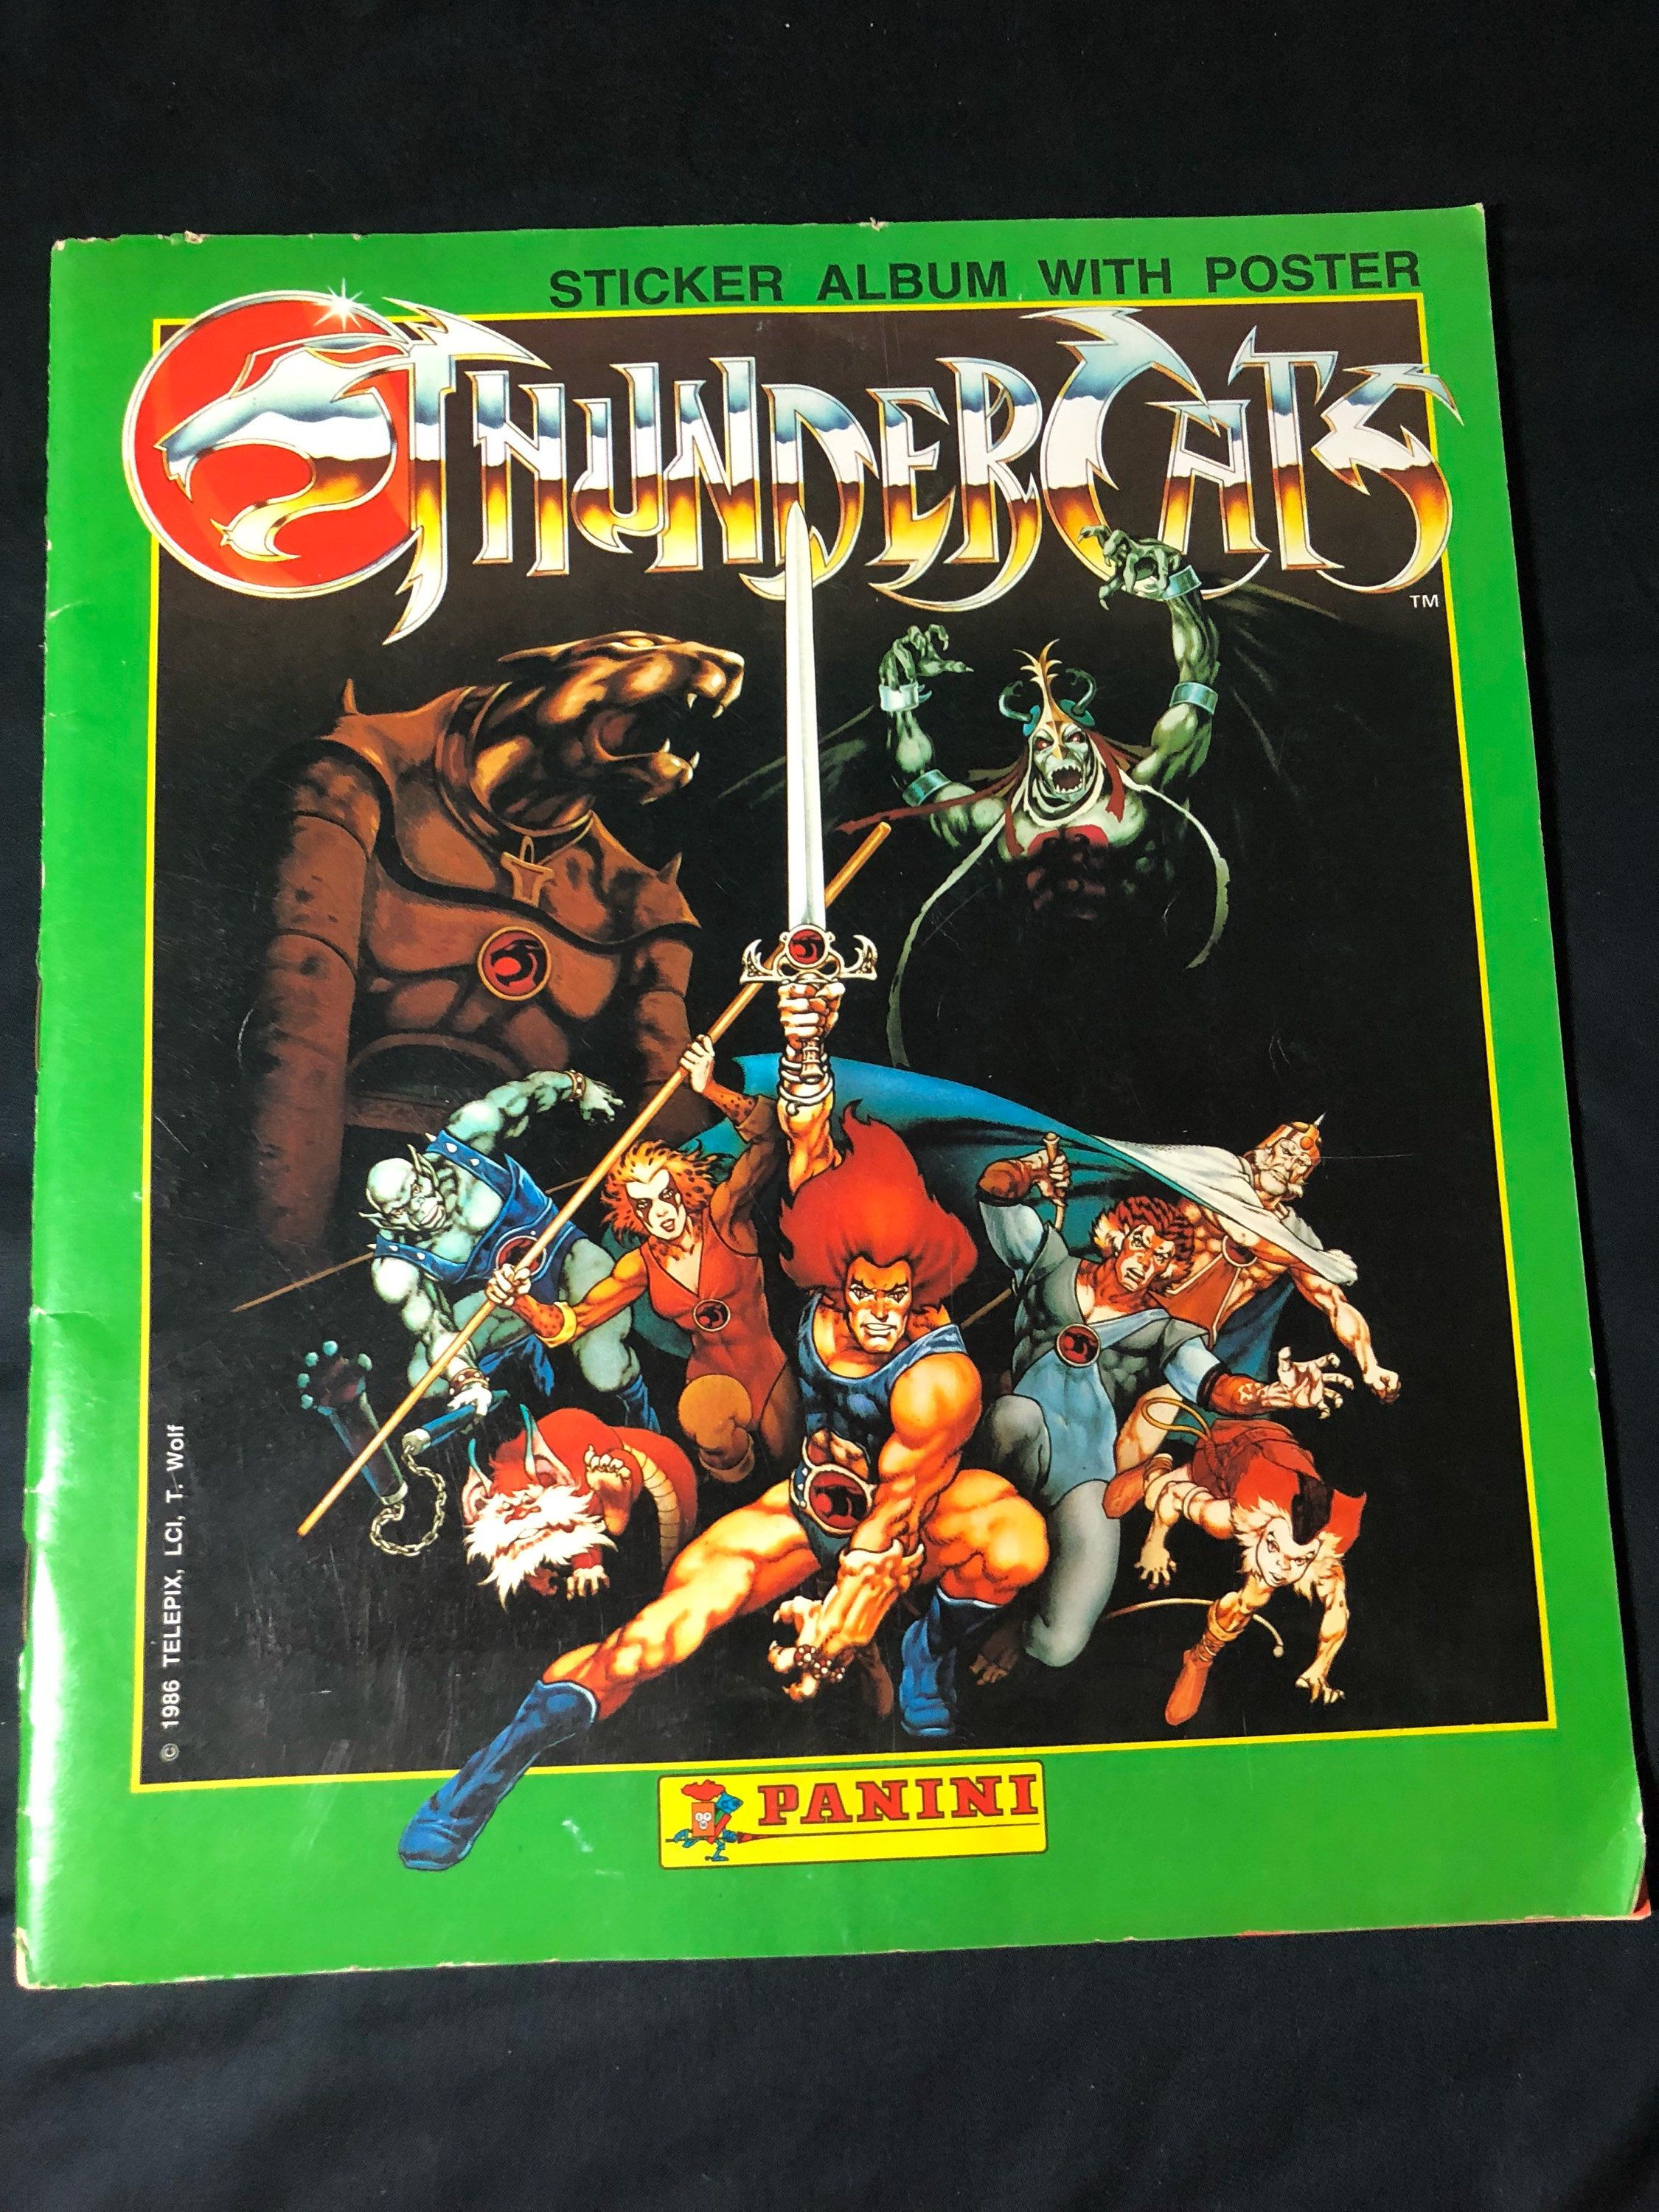 A Personal Favorite From My Etsy Shop Https Www Etsy Com Listing 585350429 1986 Thundercats Sticker Album With Sticker Album Thundercats Album [ 3000 x 2250 Pixel ]